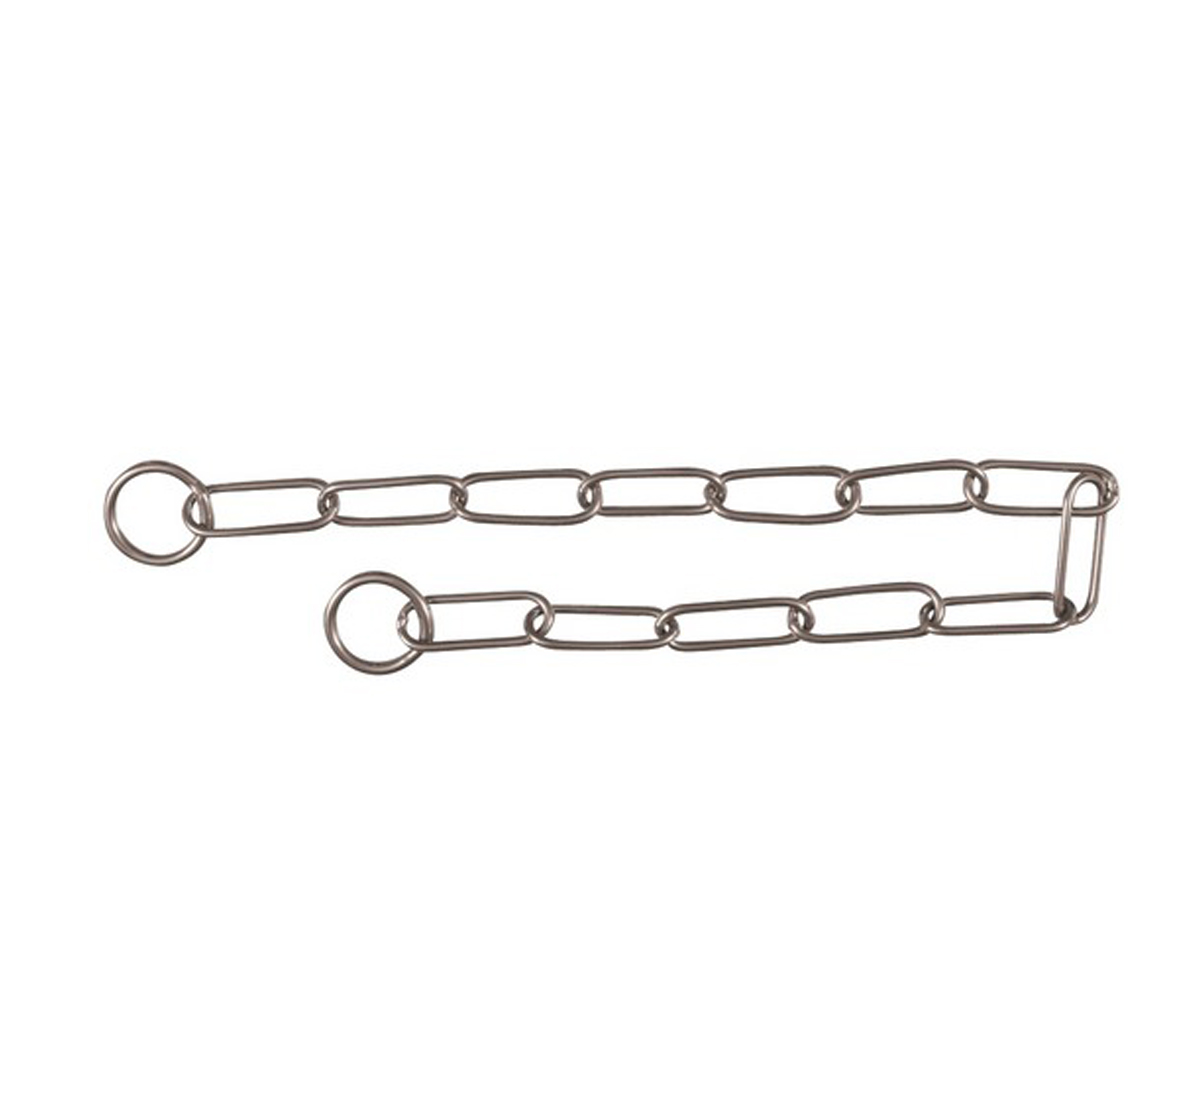 Trixie Dog Long Link Choke Chain Stainless Steel - Small - 4.0 mm